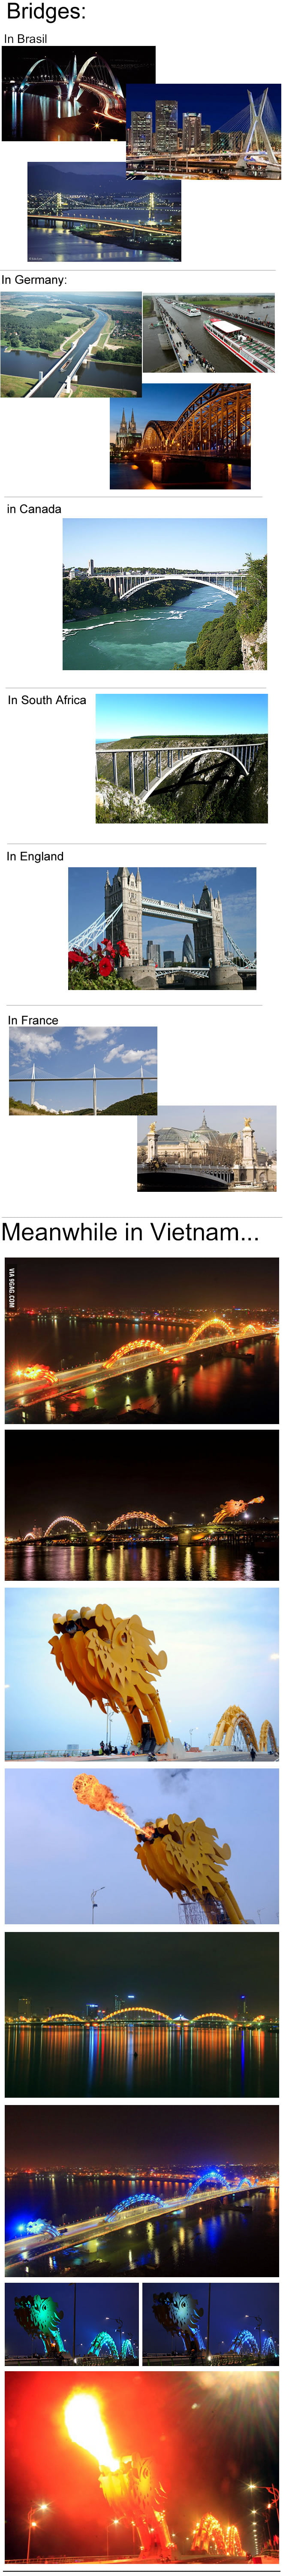 Meanwhile in Vietnam